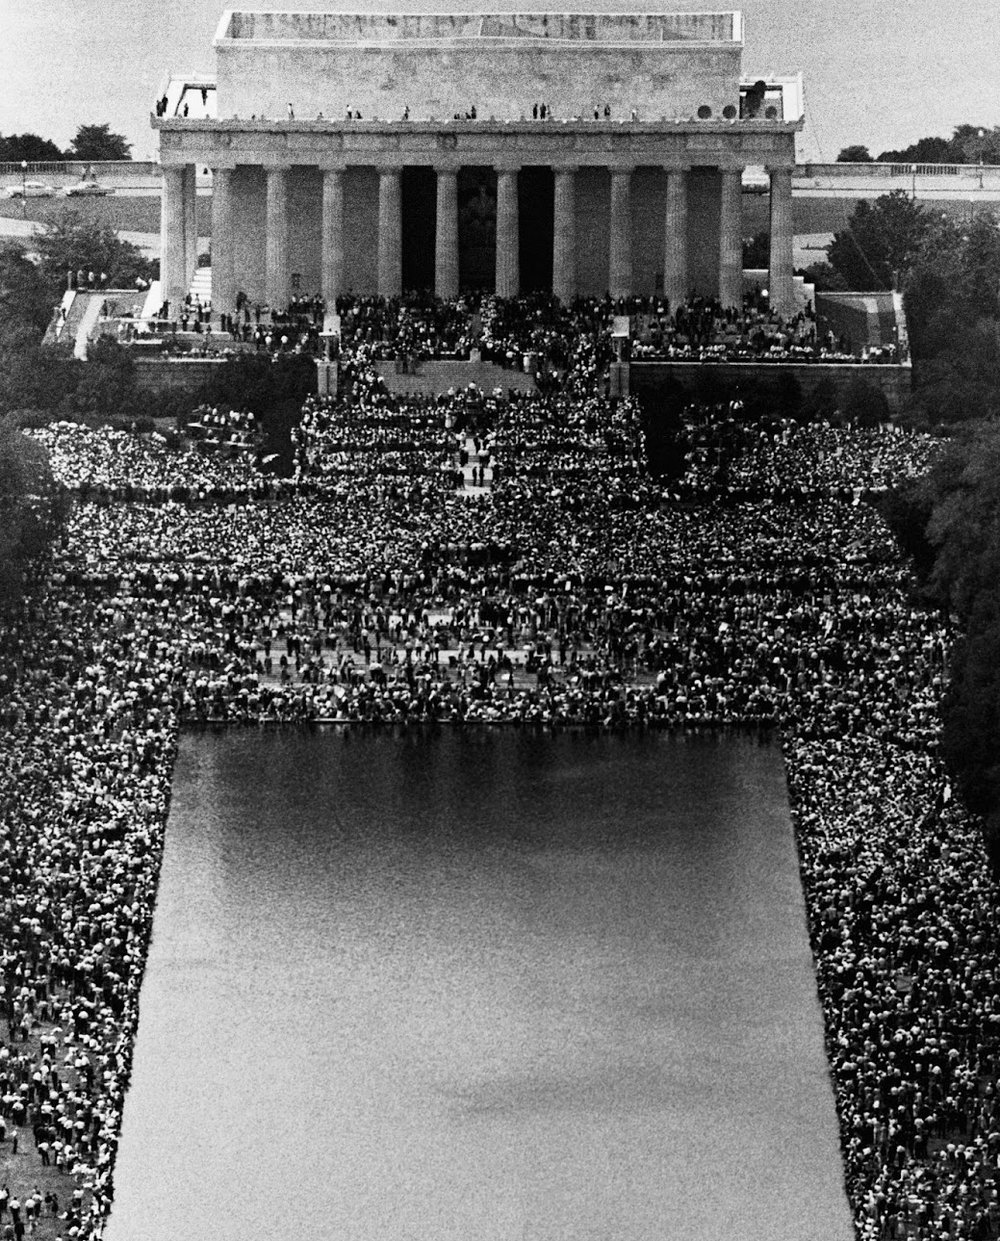 """Today is Martin Luther King, Jr. Day here in the United States - honoring the Baptist minister, activist, humanitarian, and leader of the African-American Civil Rights Movement. This overview captures the Lincoln Memorial during King's famous """"I Have A Dream Speech"""" in Washington, D.C. on August 28, 1963. In front of more than 250,000 civil rights supporters, King described his dreams of freedom and equality arising from a land of slavery and hatred.  Photo credit: Life"""